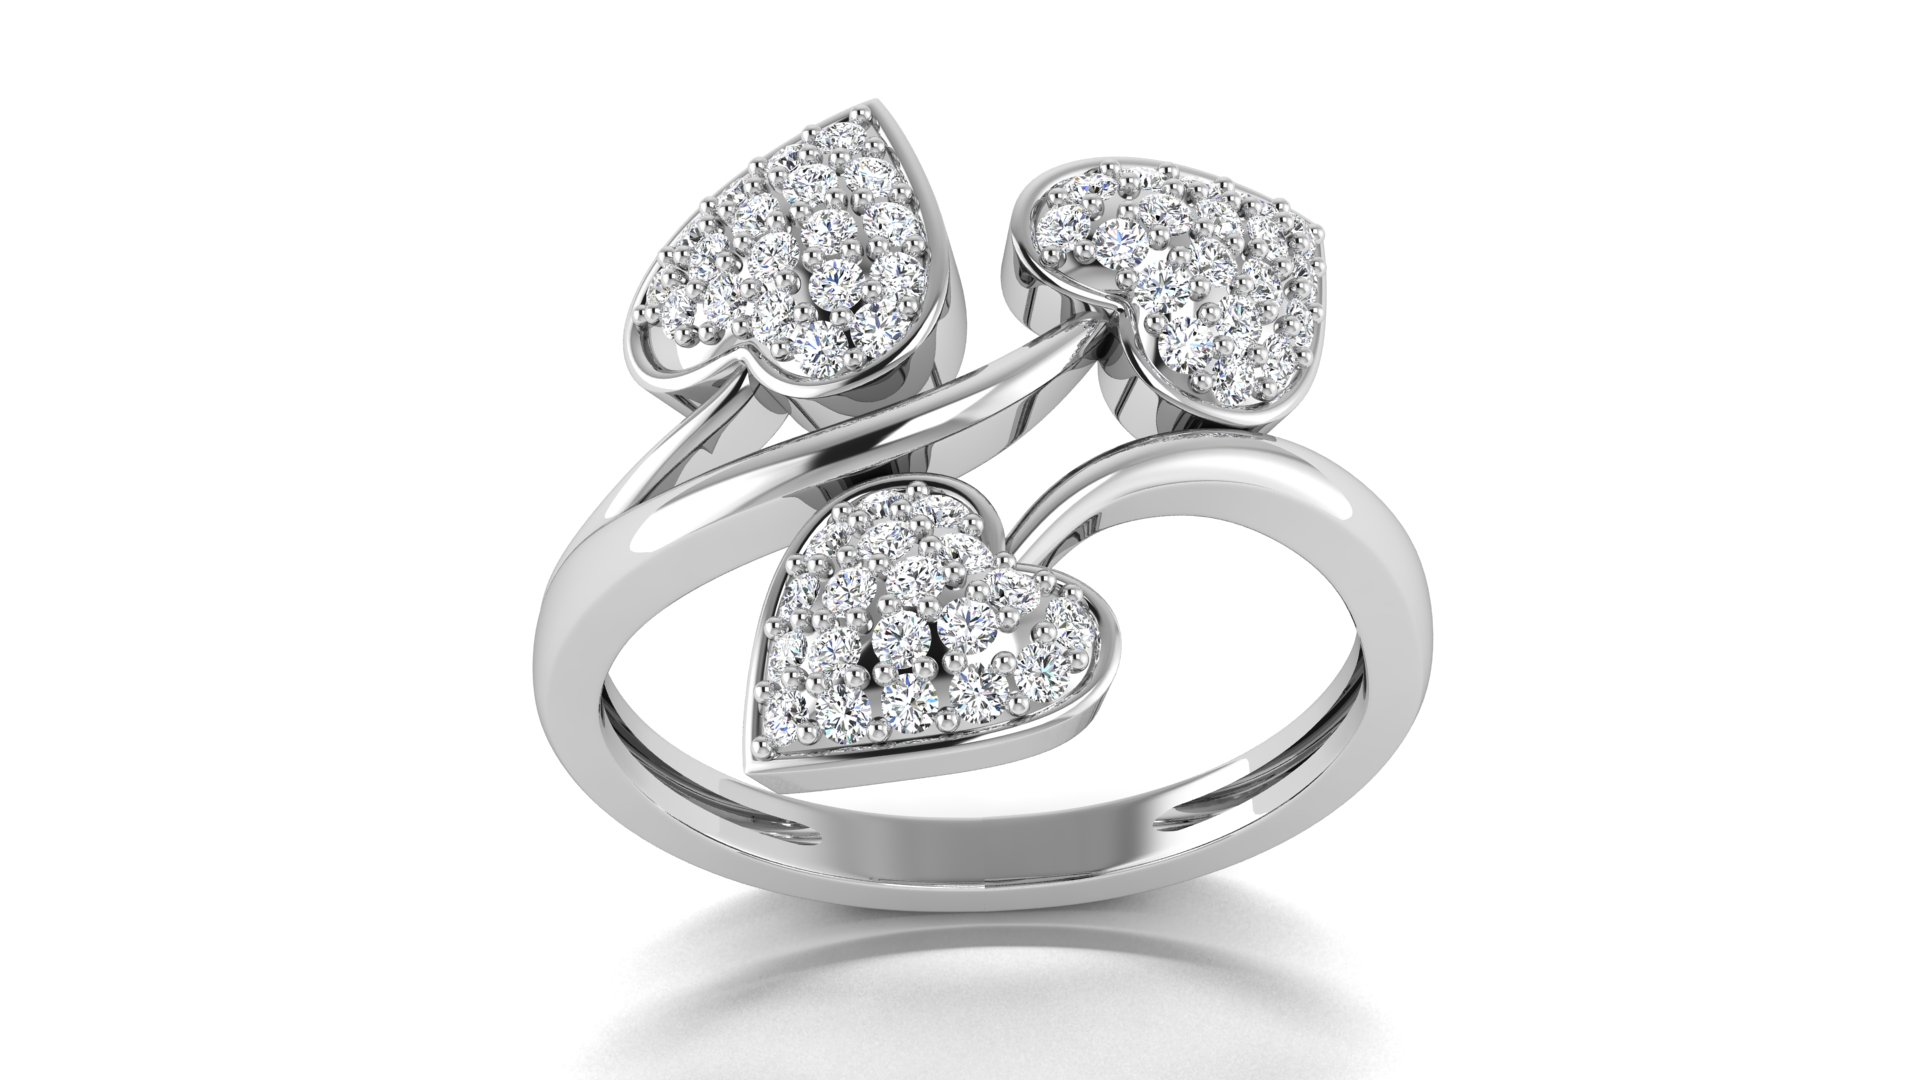 Fashionable Silver Ring for Ladies